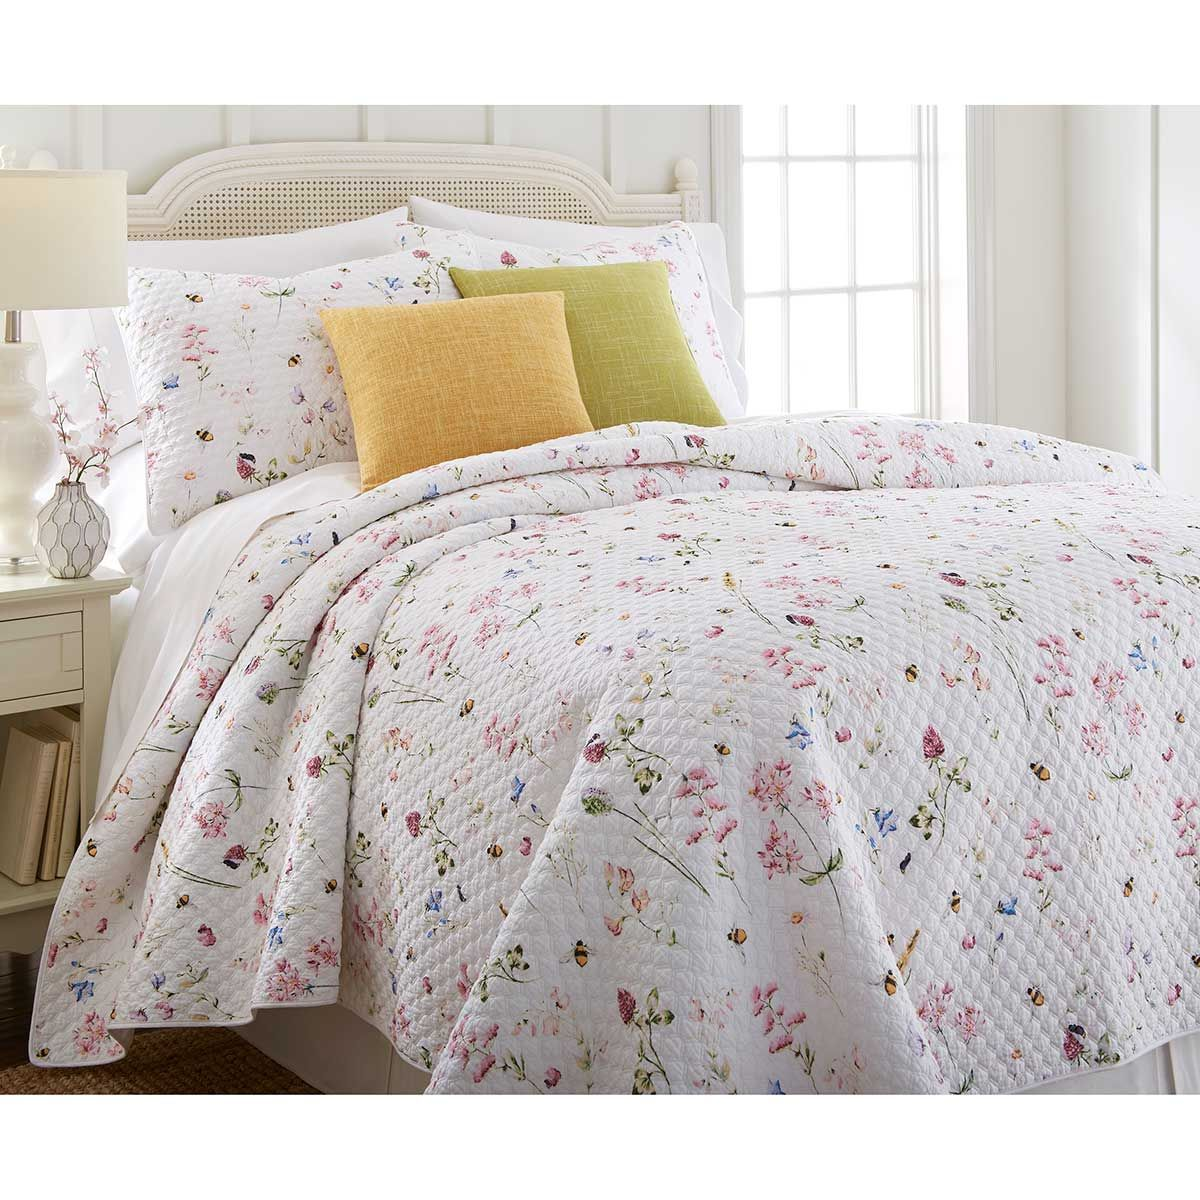 Country Charm Wholecloth Quilt And Shams Set King Cracker